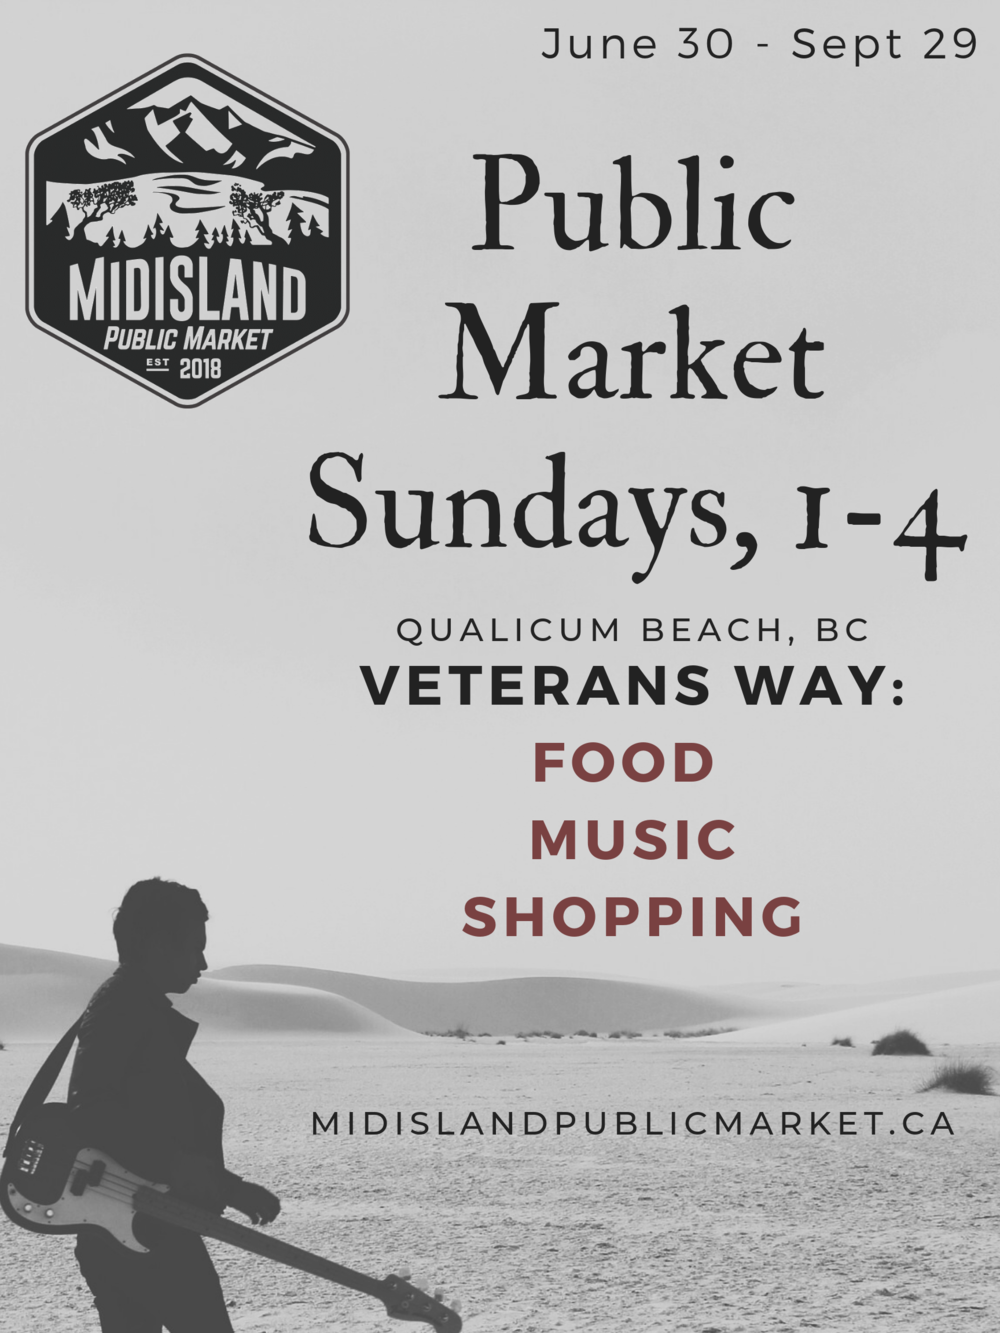 WE ARE A GO! - We have received approval and so much support from the Town of Qualicum Beach!Our 2019 market season is confirmed June 30th - Sept 29thSundays, 1-4pmFoodMusicShoppingCome and spend a fabulous afternoon with us!!!